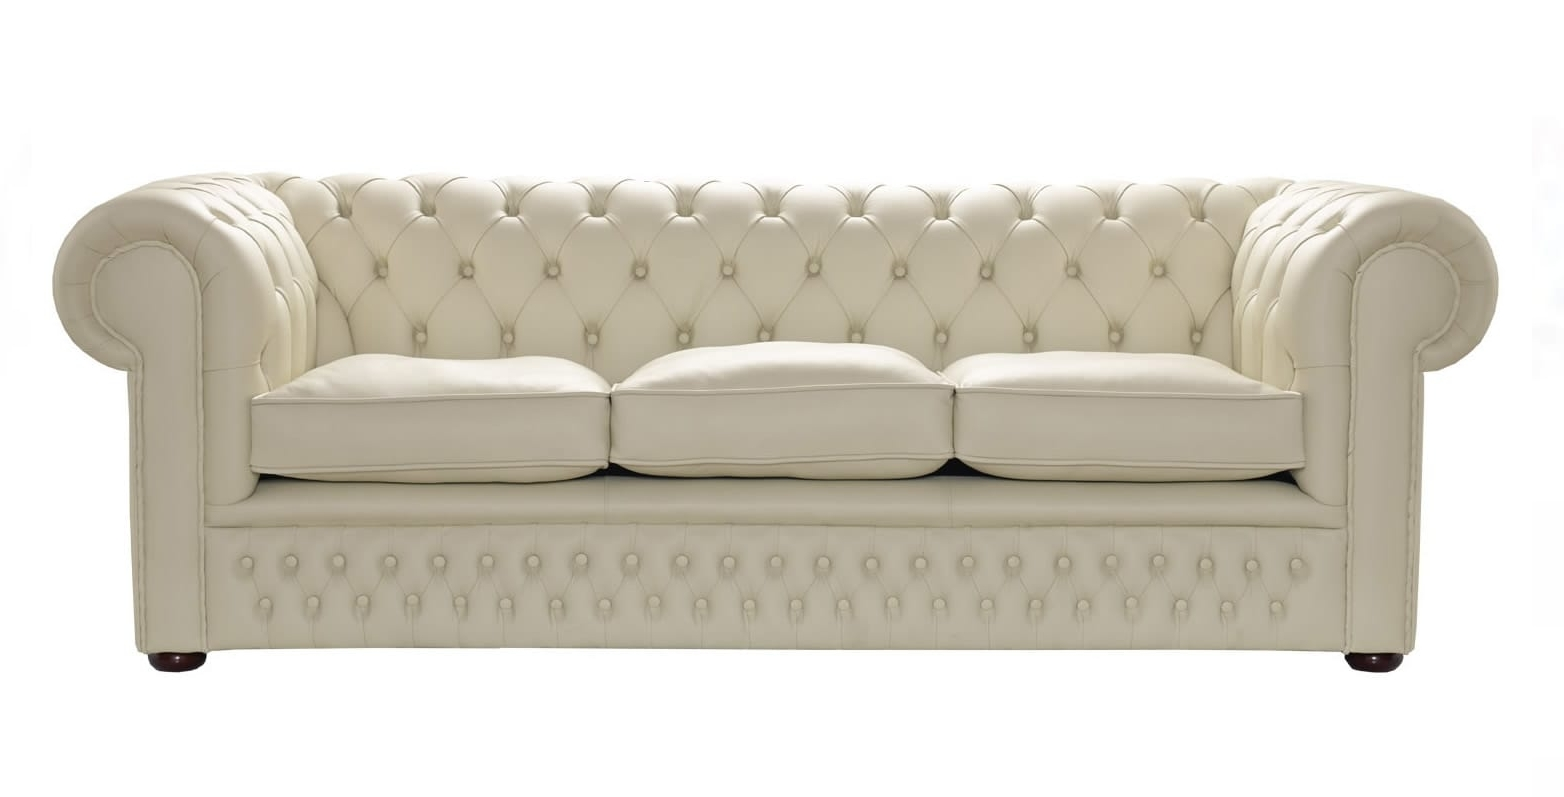 Sofa : Genuine Leather Sectional Cream Leather Sofa And Loveseat Intended For Trendy Cream Colored Sofas (View 19 of 20)